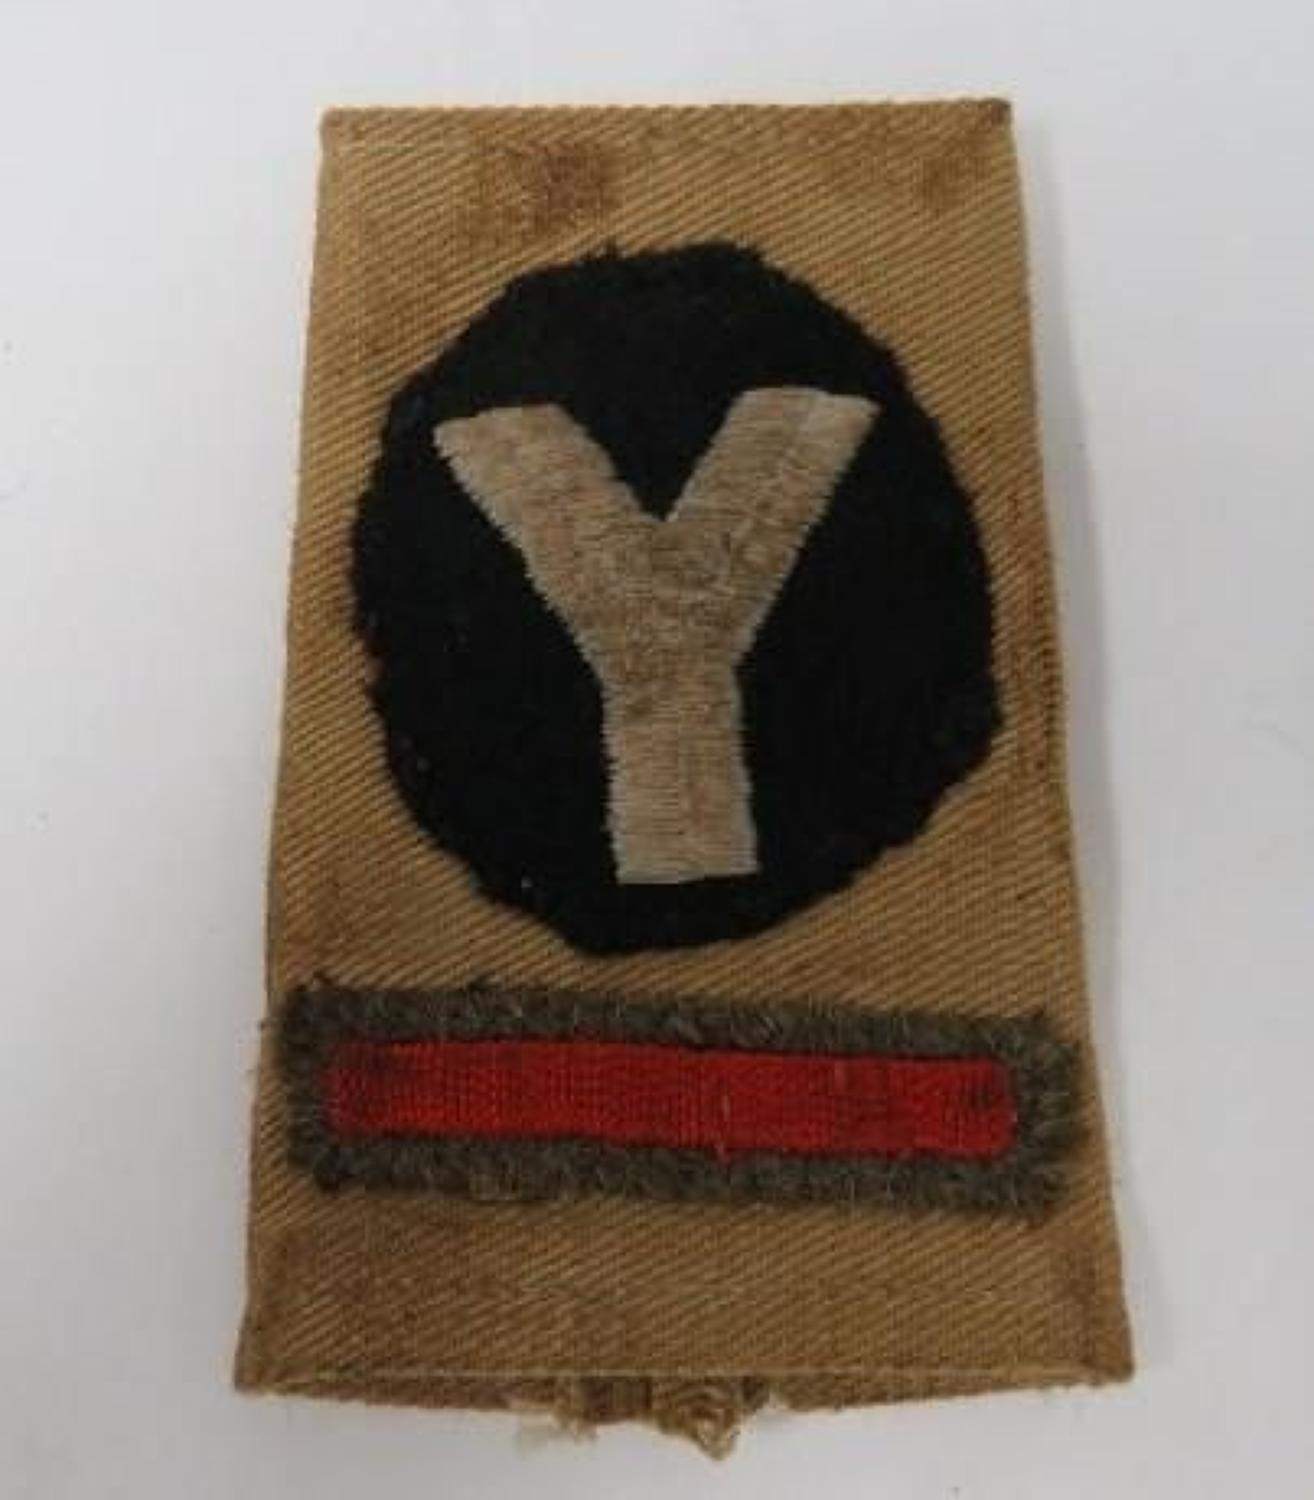 5th Infantry Division Slip on Shoulder Strap